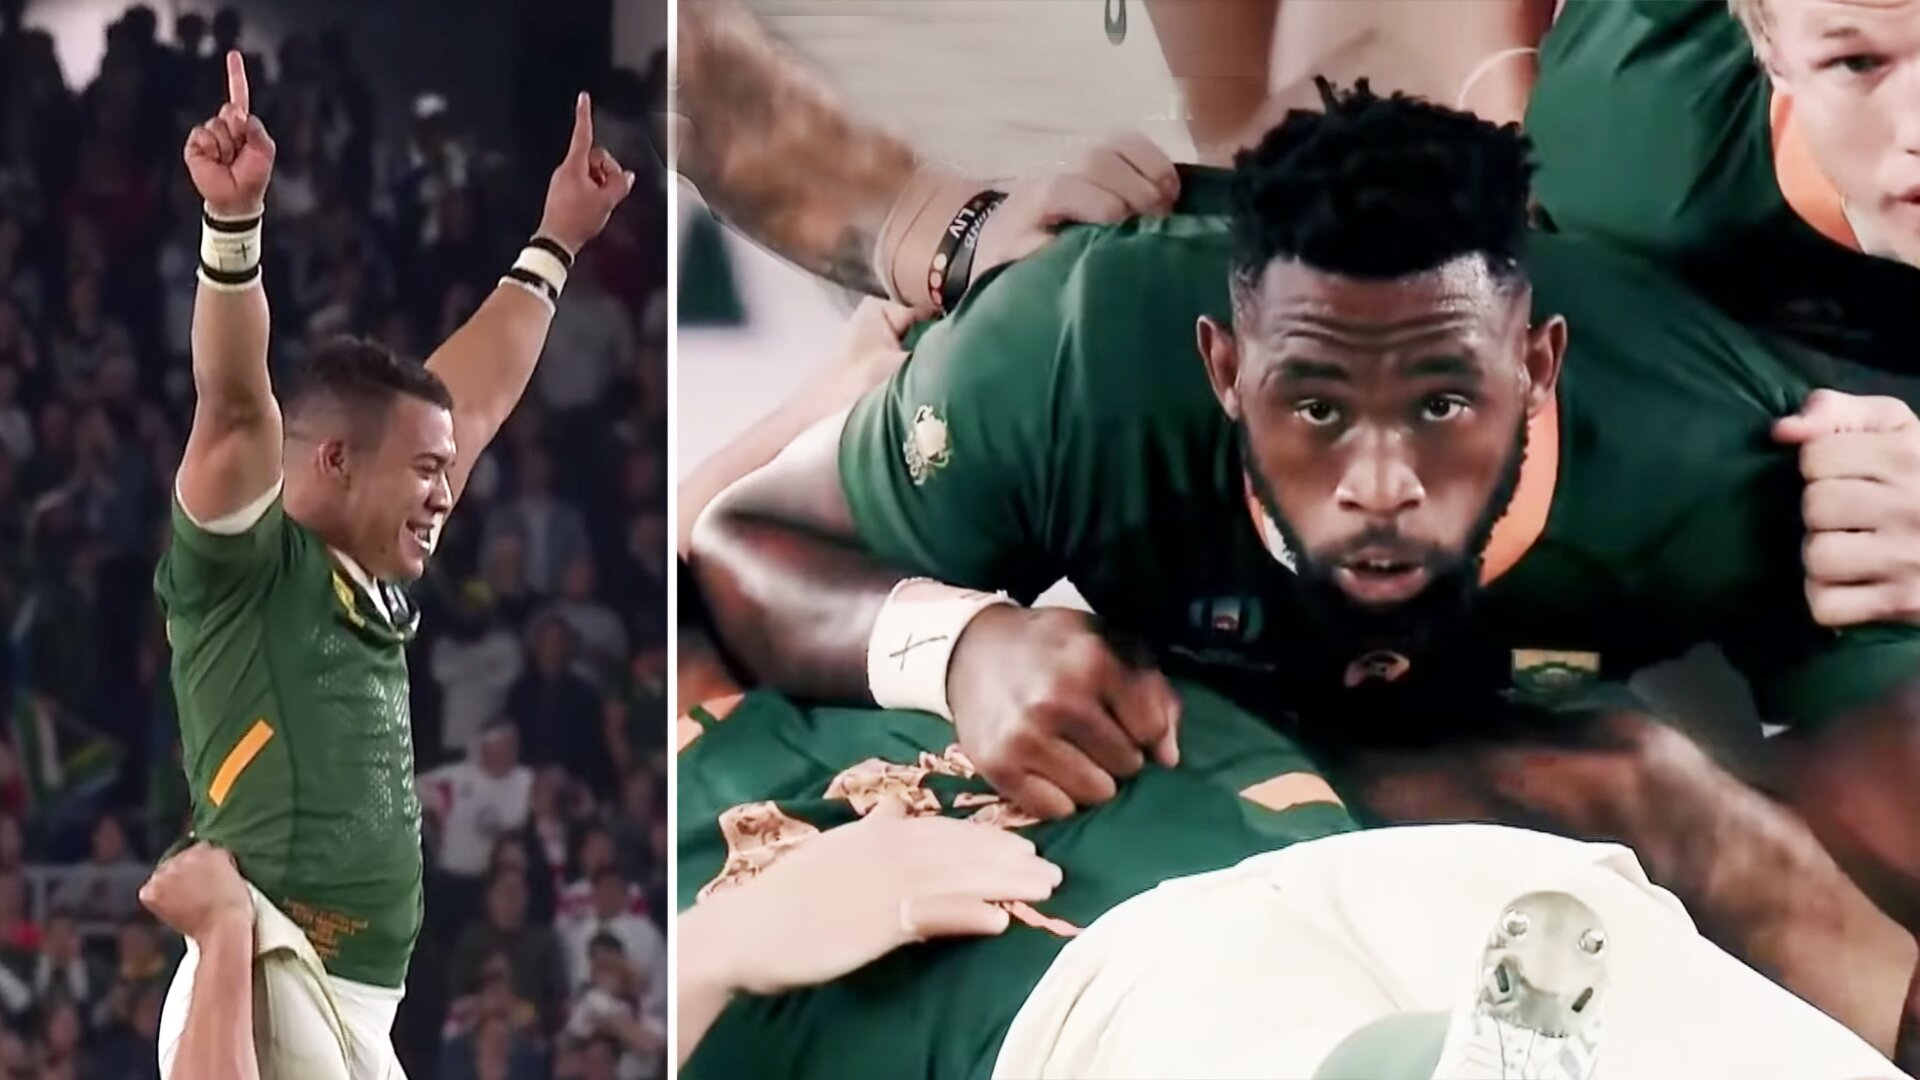 Powerful new video shows South Africa's incredible journey of redemption to win the Rugby World Cup